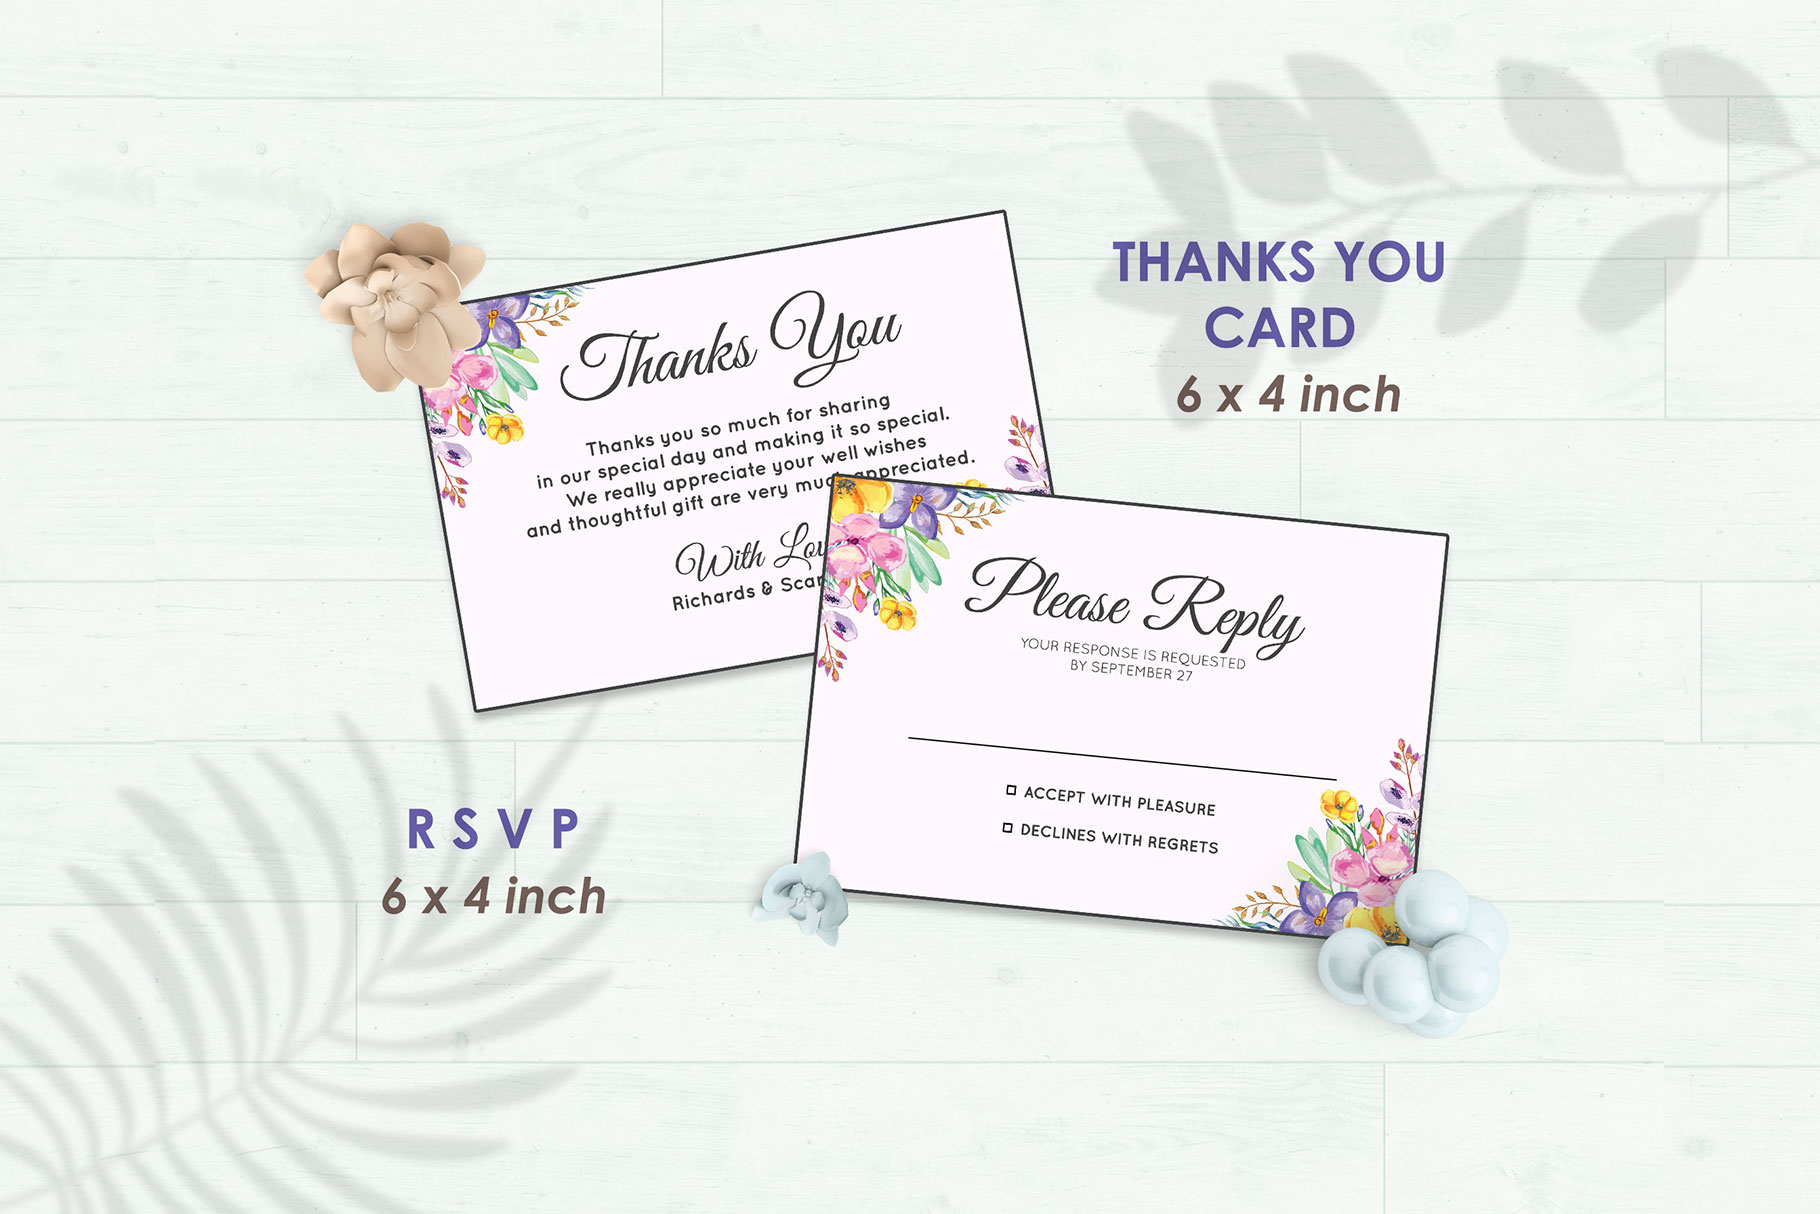 Wedding Invitation Set #1 Watercolor Floral Flower Style example image 4